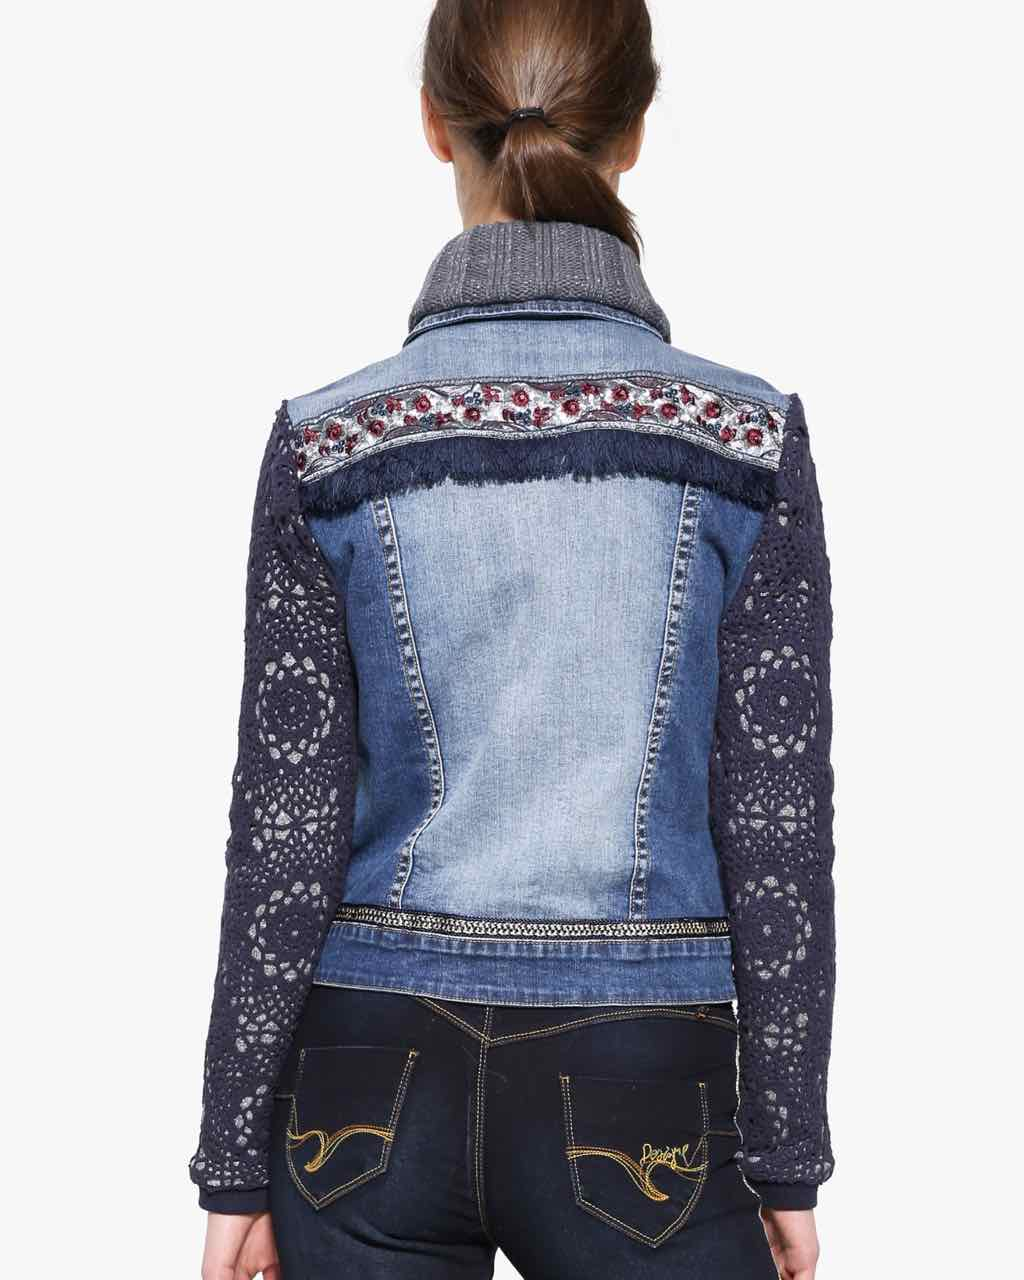 Desigual Denim Jacket Exotic Crochet 17wwed39 Buy Online